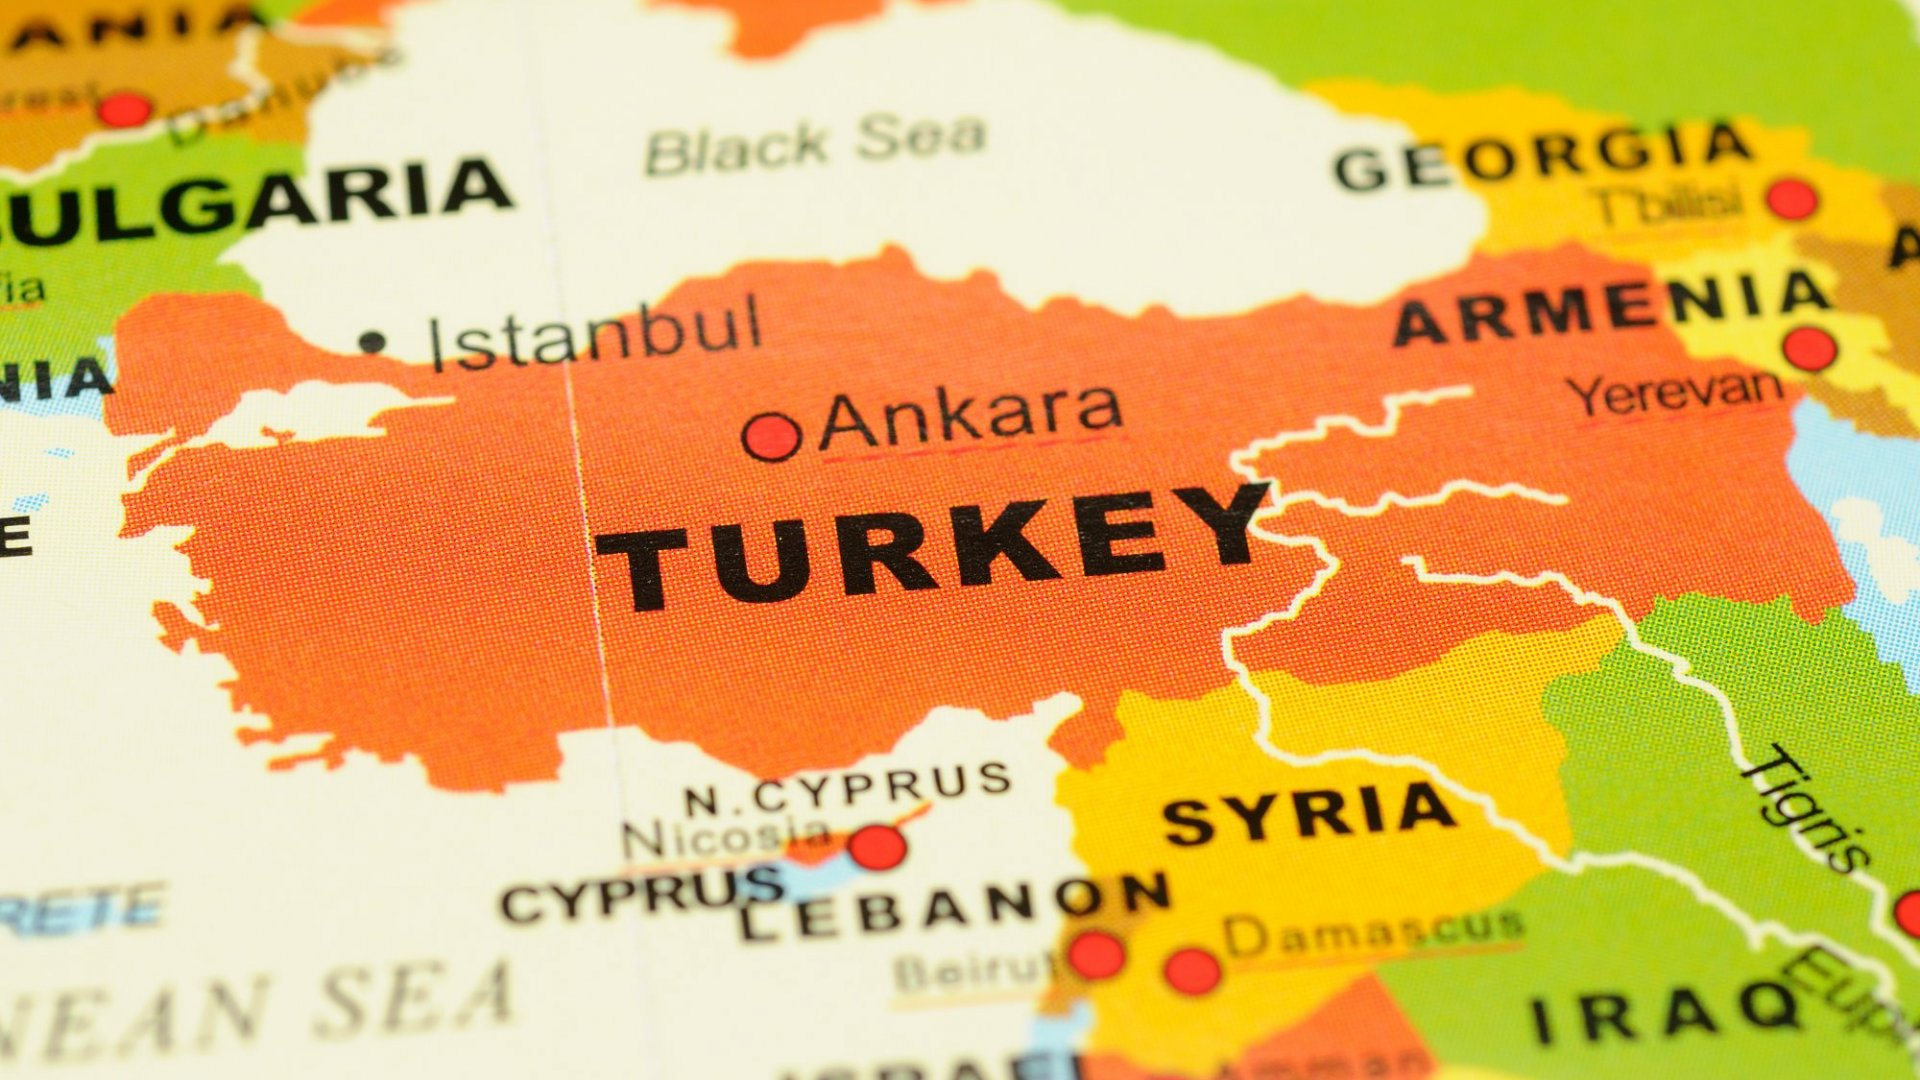 5 Fascinating Facts About Startups & Tech In Turkey